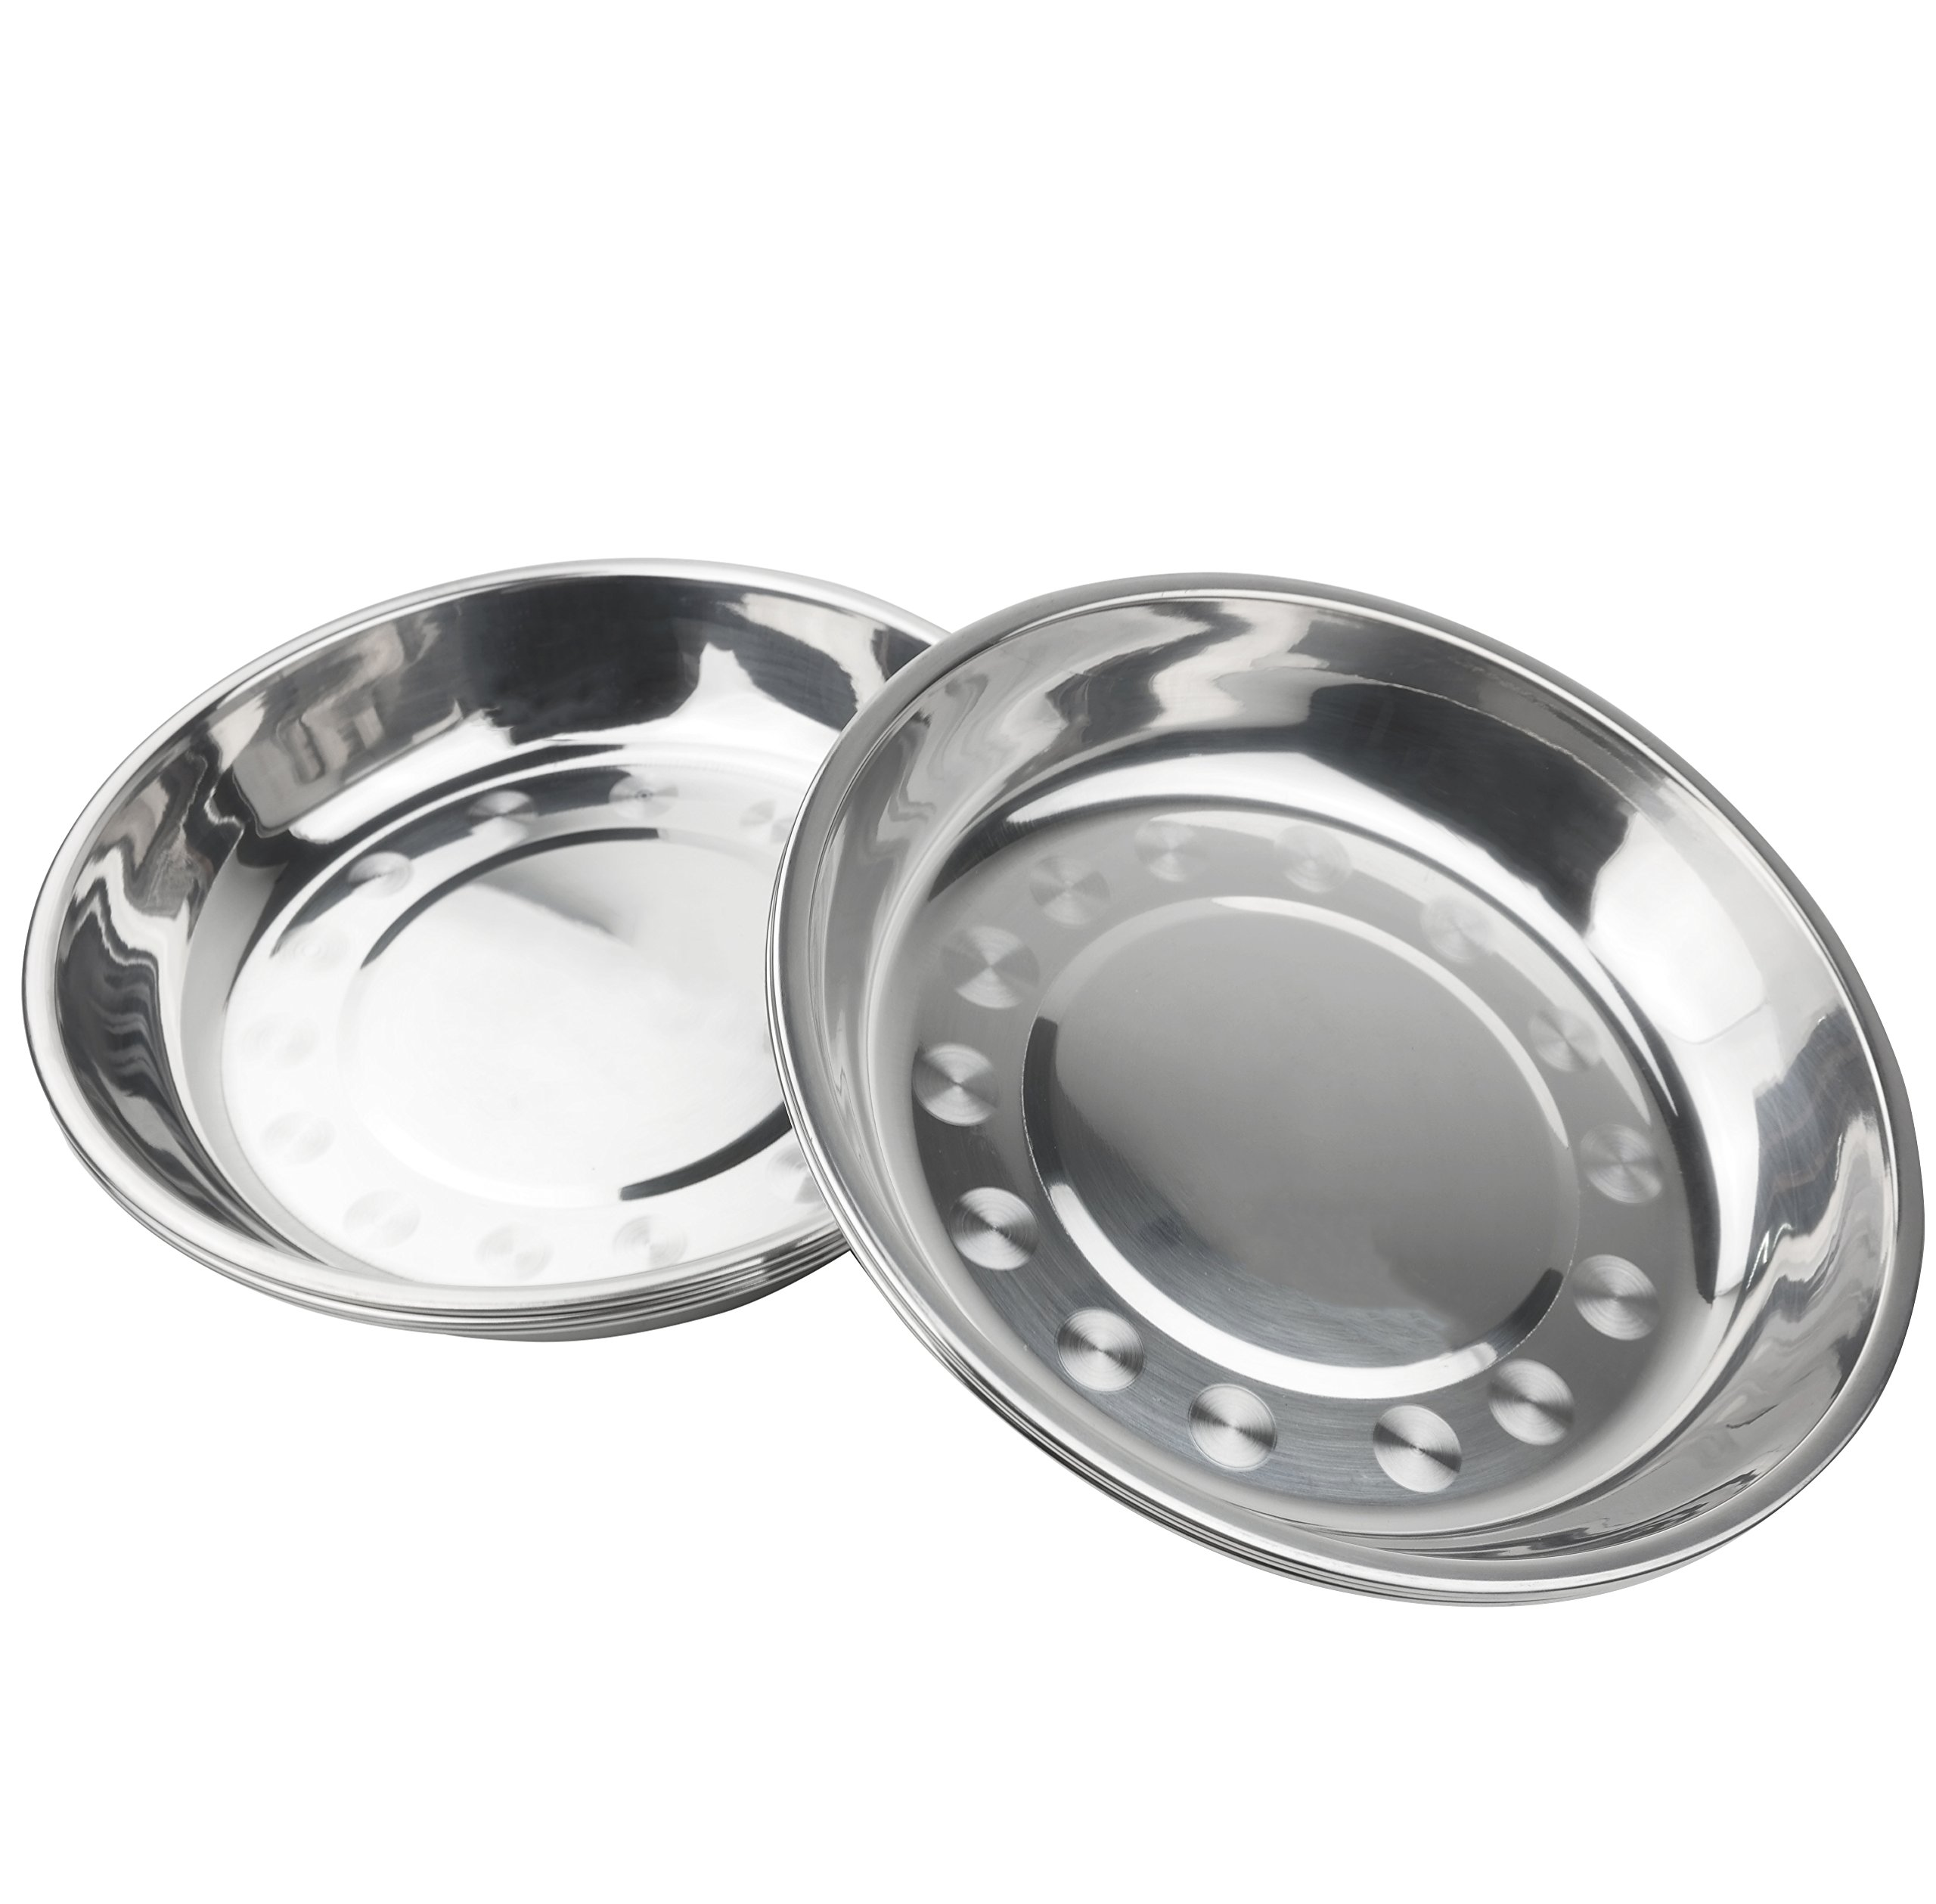 Nicesh Stainless 7.64 Inch Steel Dinner Plate Dish Food Holder Container Plates, Pack of 6